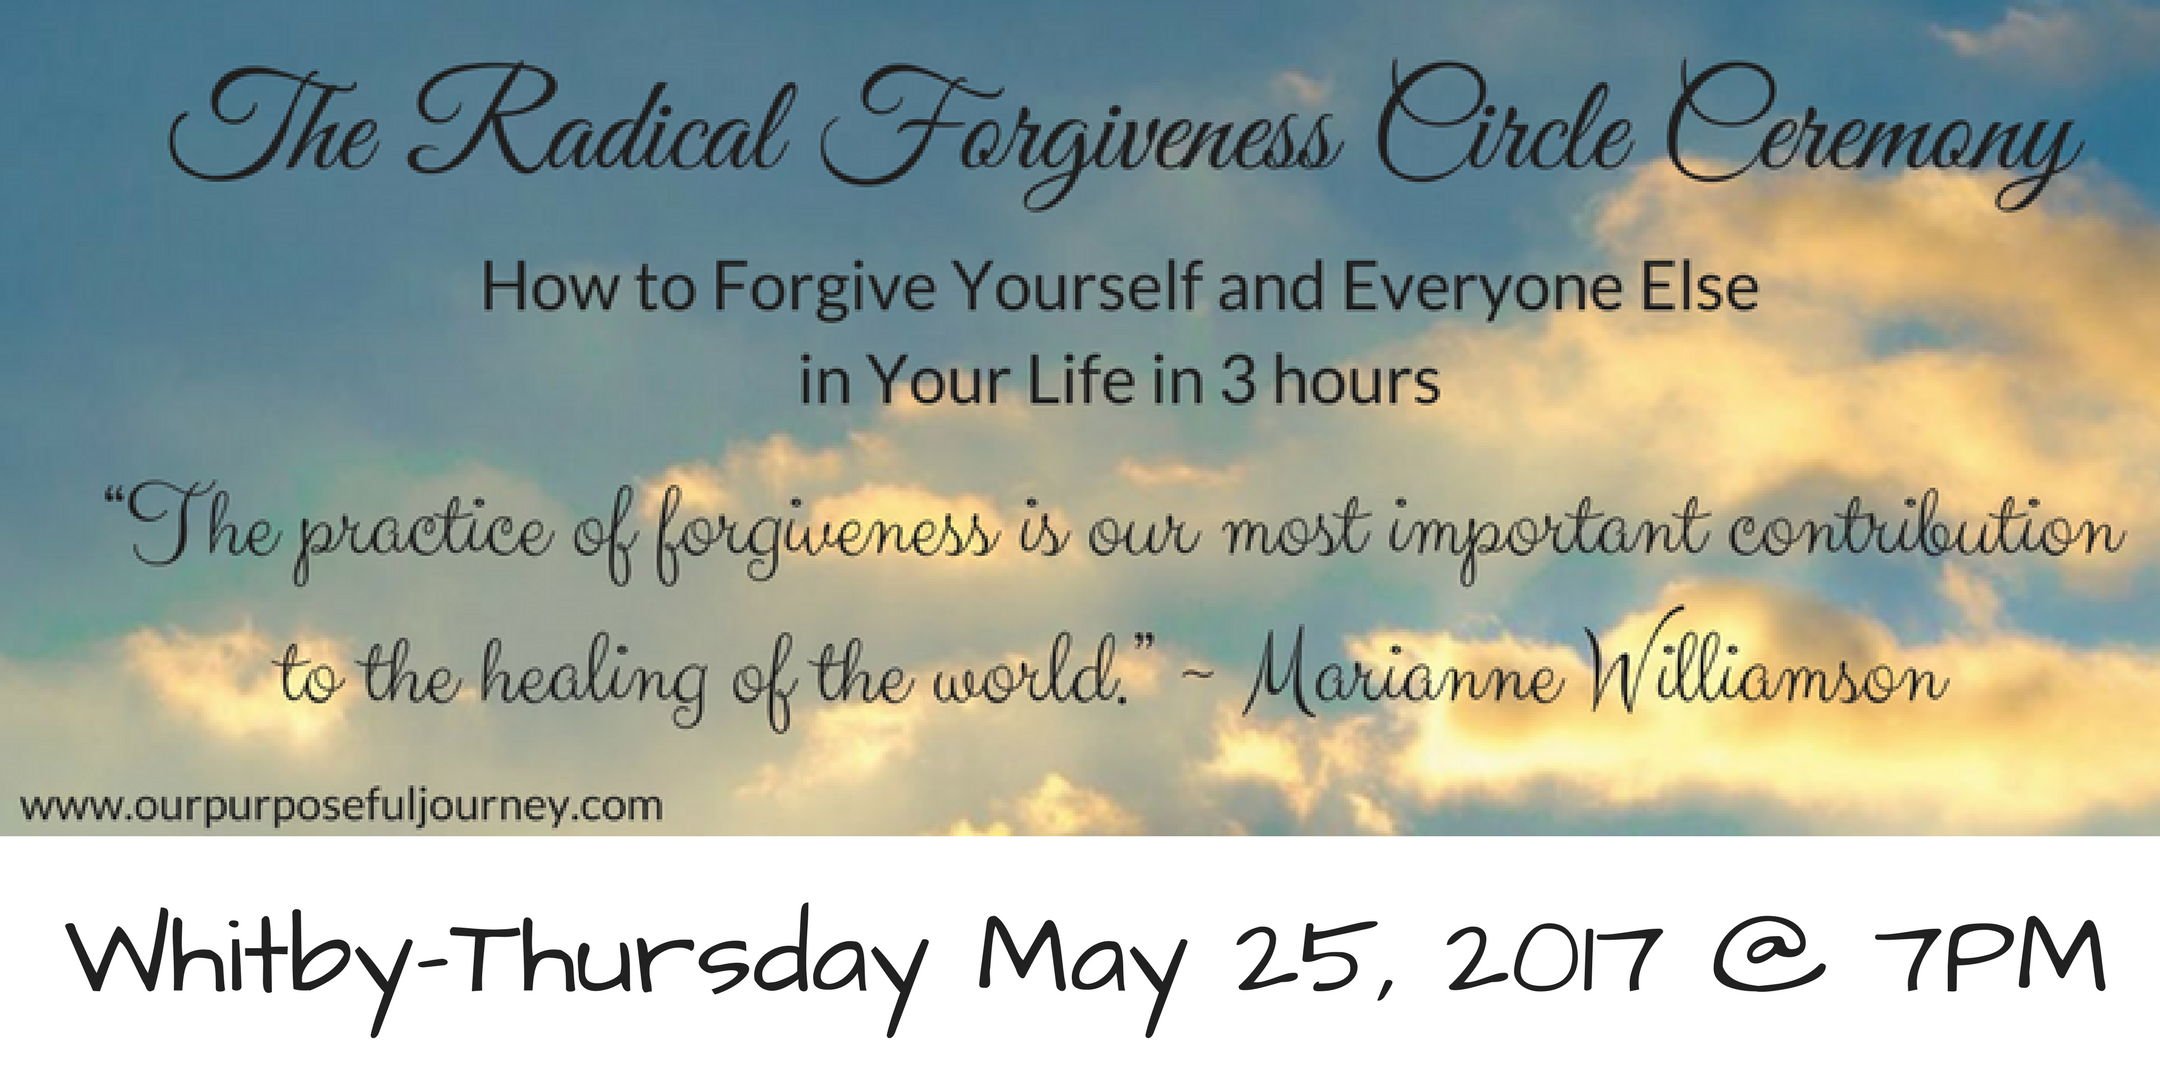 The Radical Forgiveness Circle Ceremony